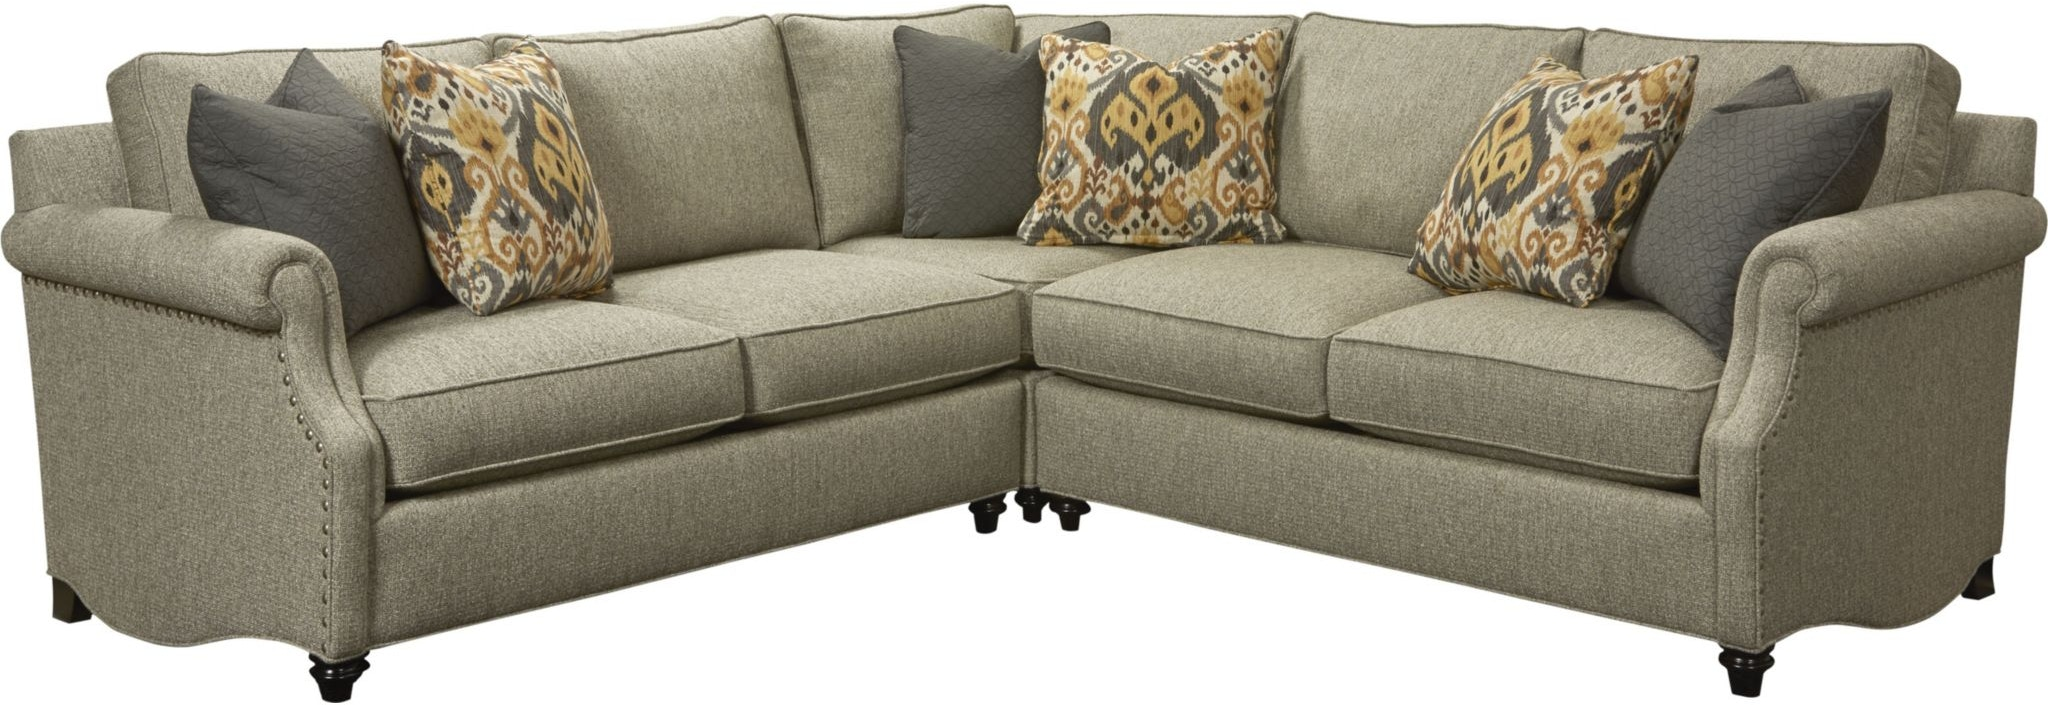 Thomasville Living Room Ancil Sectional Impressions T114  : t11420sect from www.lenoirempirefurniture.com size 1024 x 768 jpeg 48kB